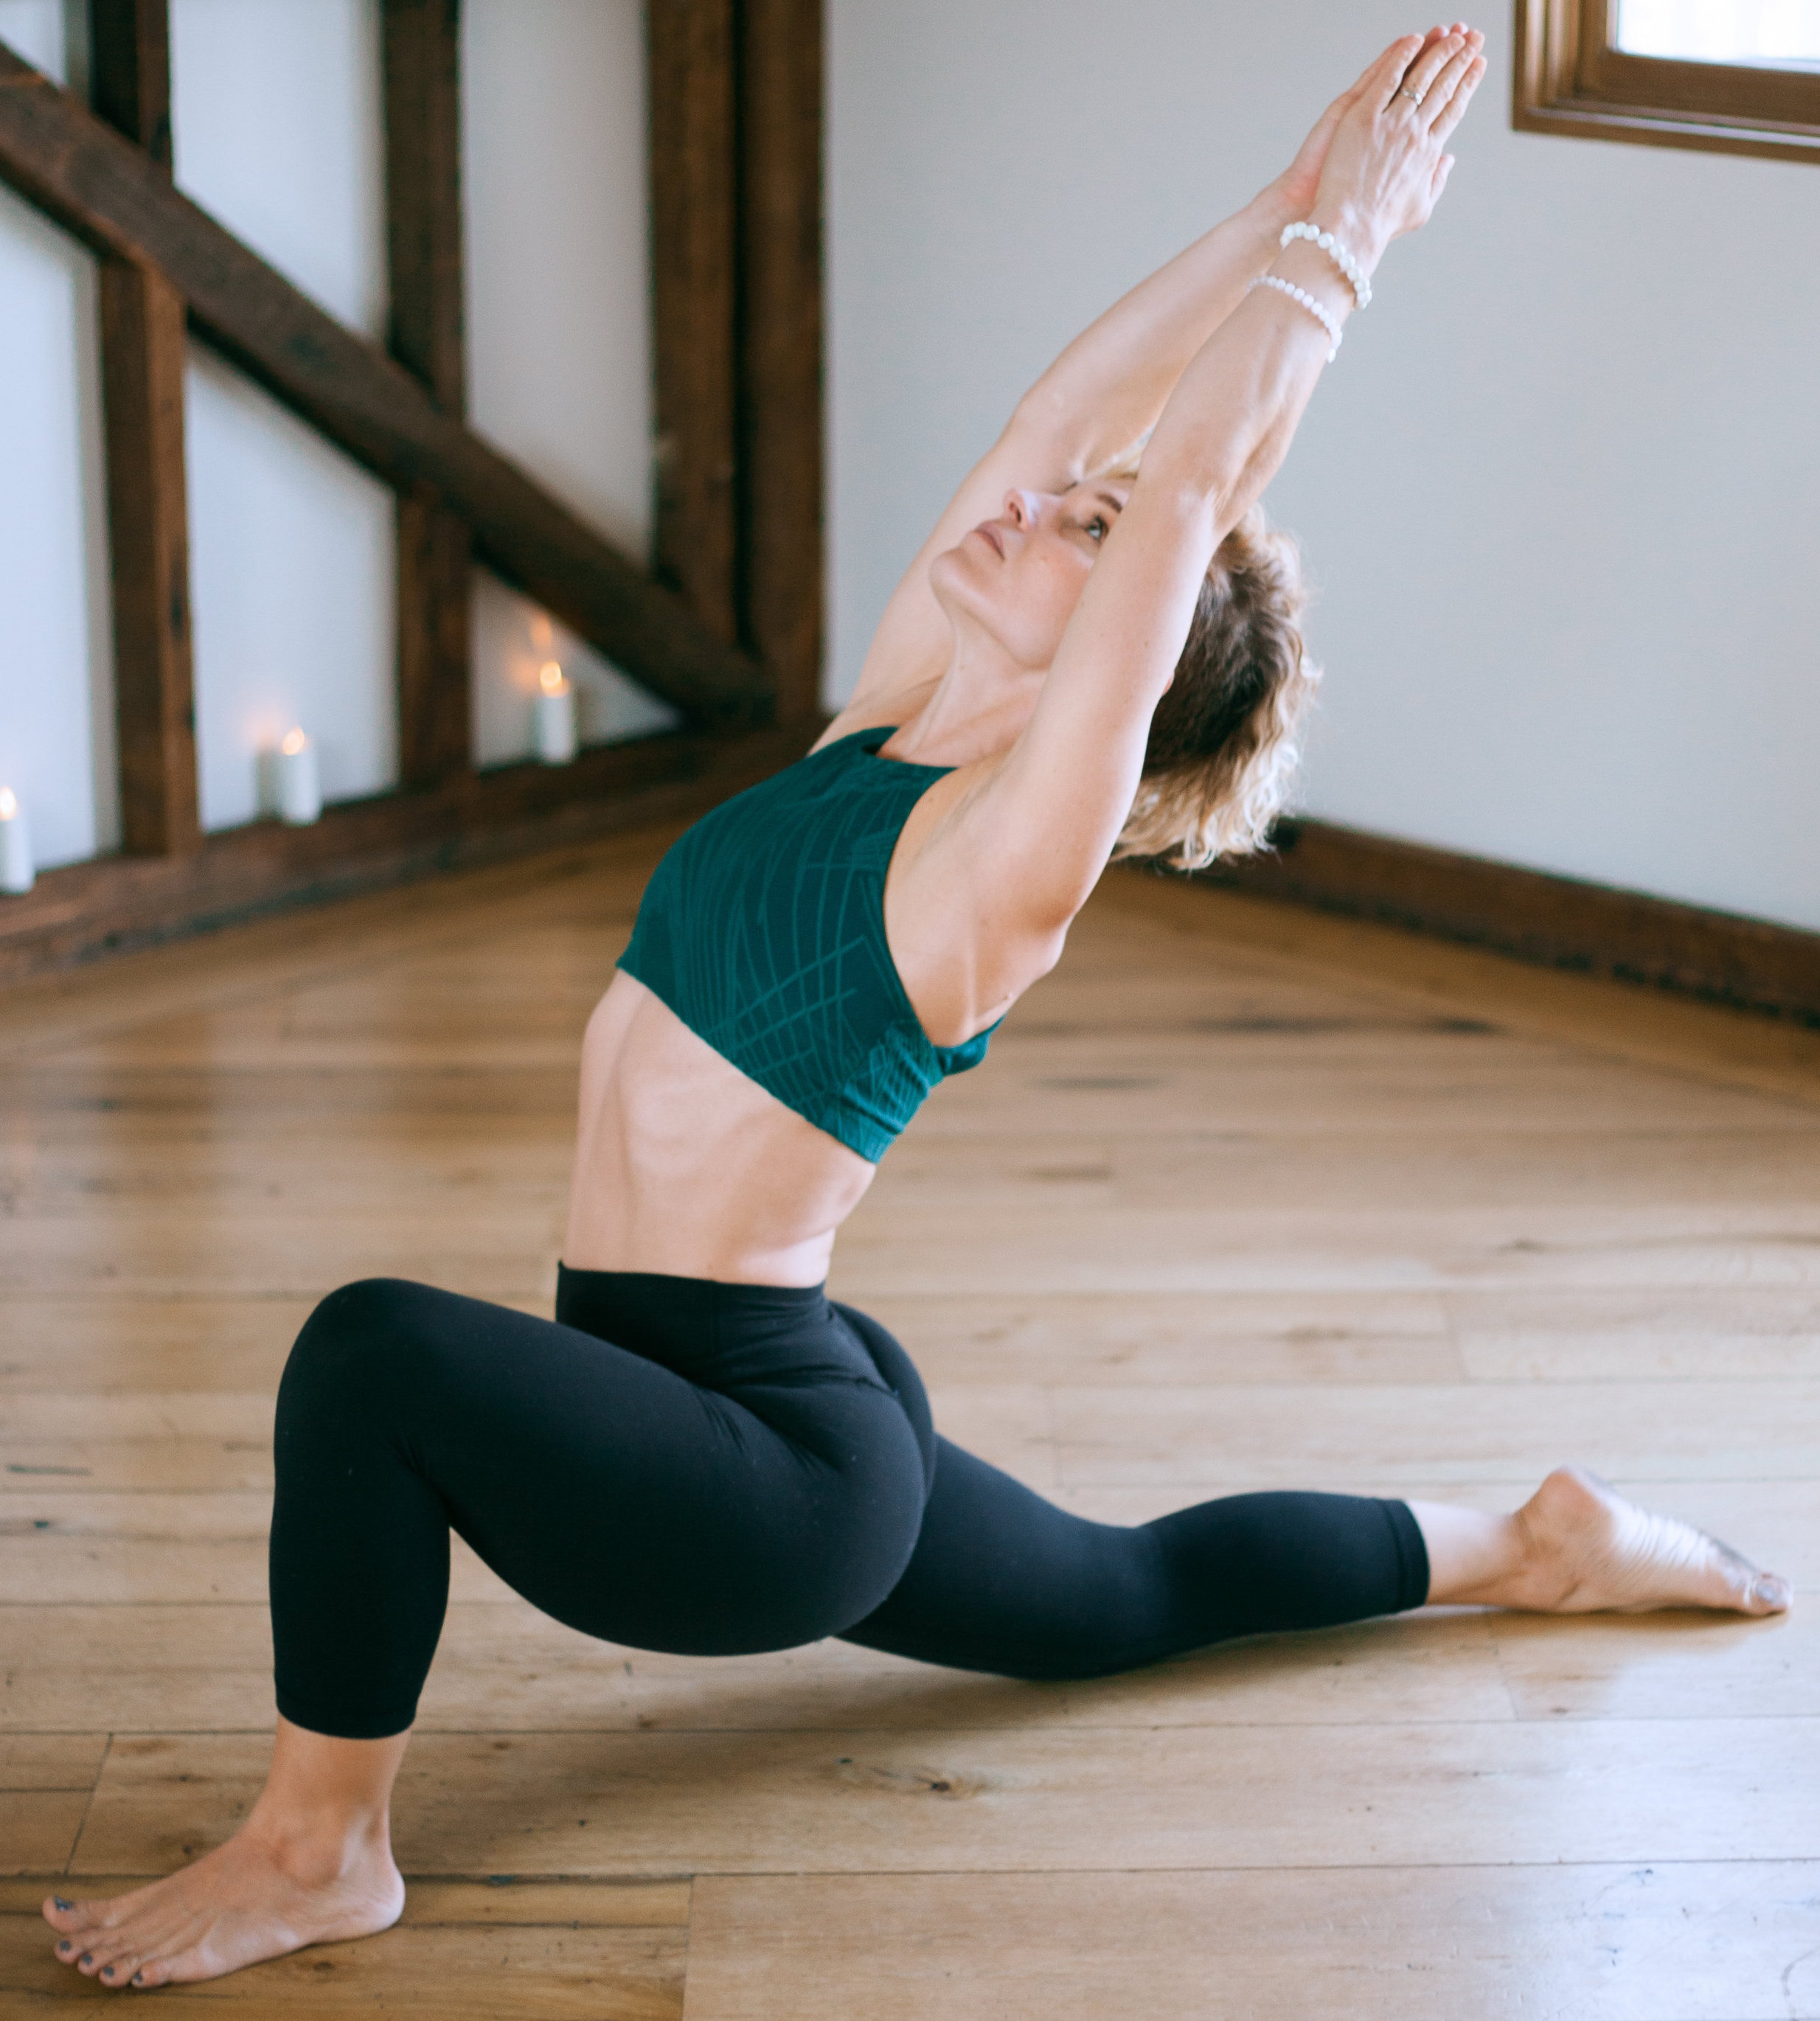 POWER VINYASA - An invigorating and athletic flow style class that aims to build heat, strengthen muscles, and deepen flexibility through breath inspired movement. Begins with energetic, dynamic, and creative sequencing and closes with restorative counter postures to balance the mind, body, and soul.